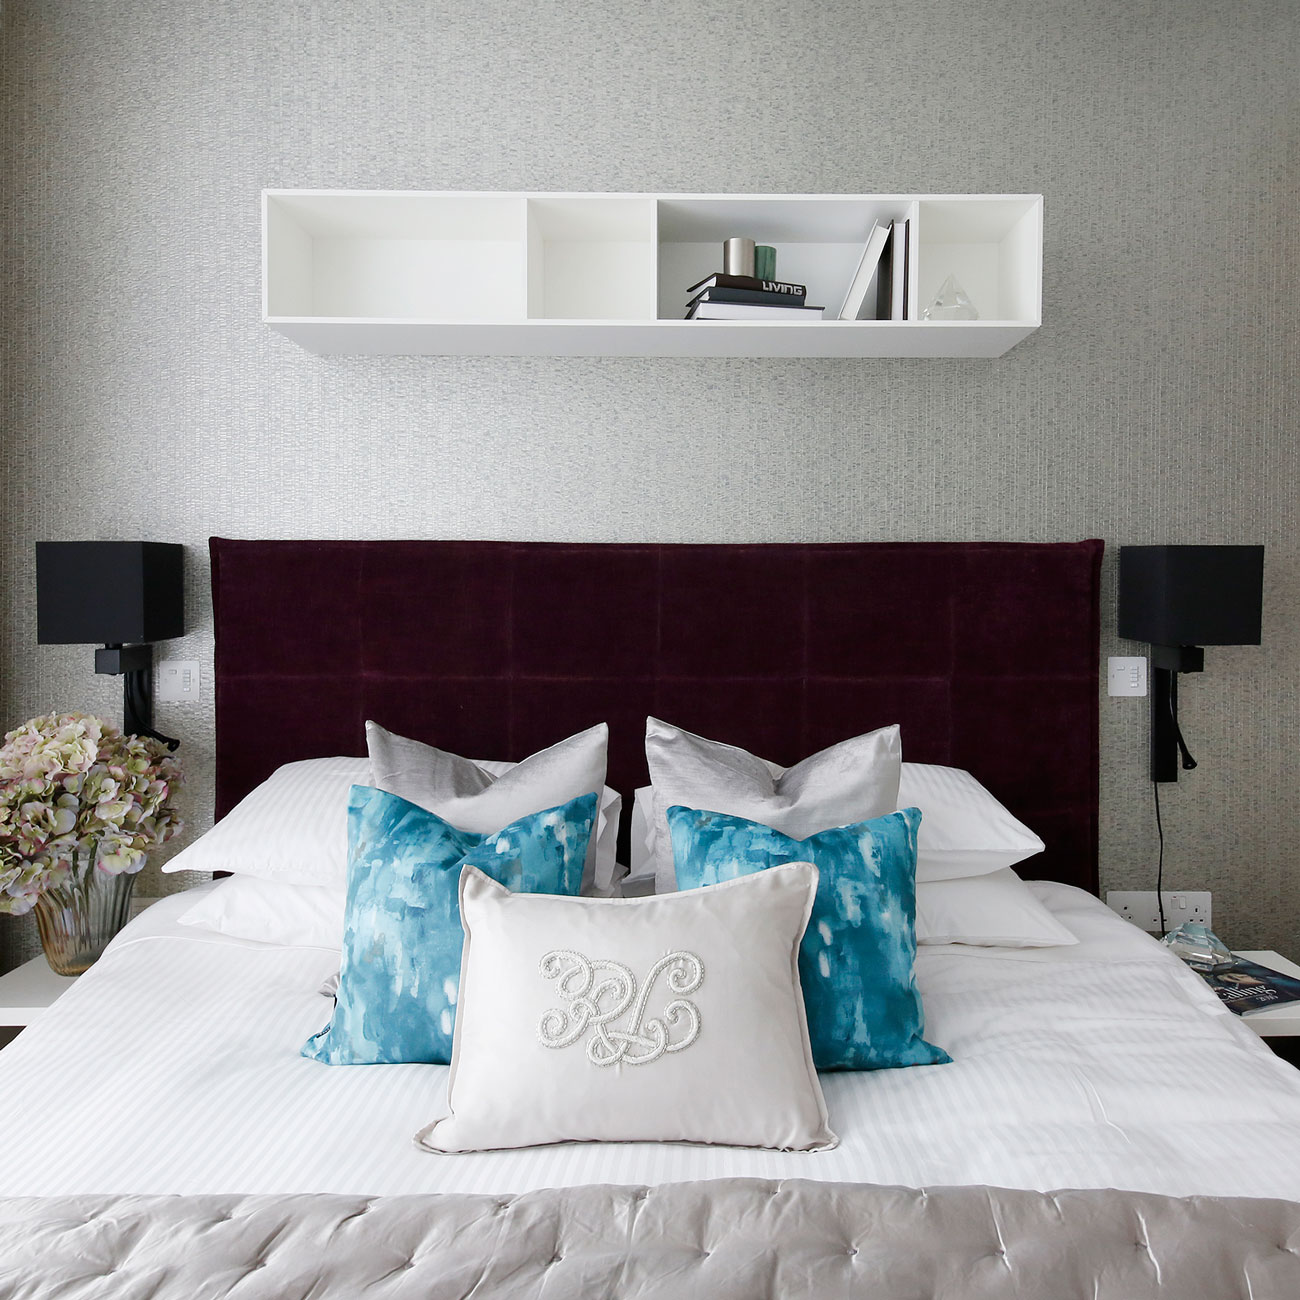 Interior photography, bedroom detail